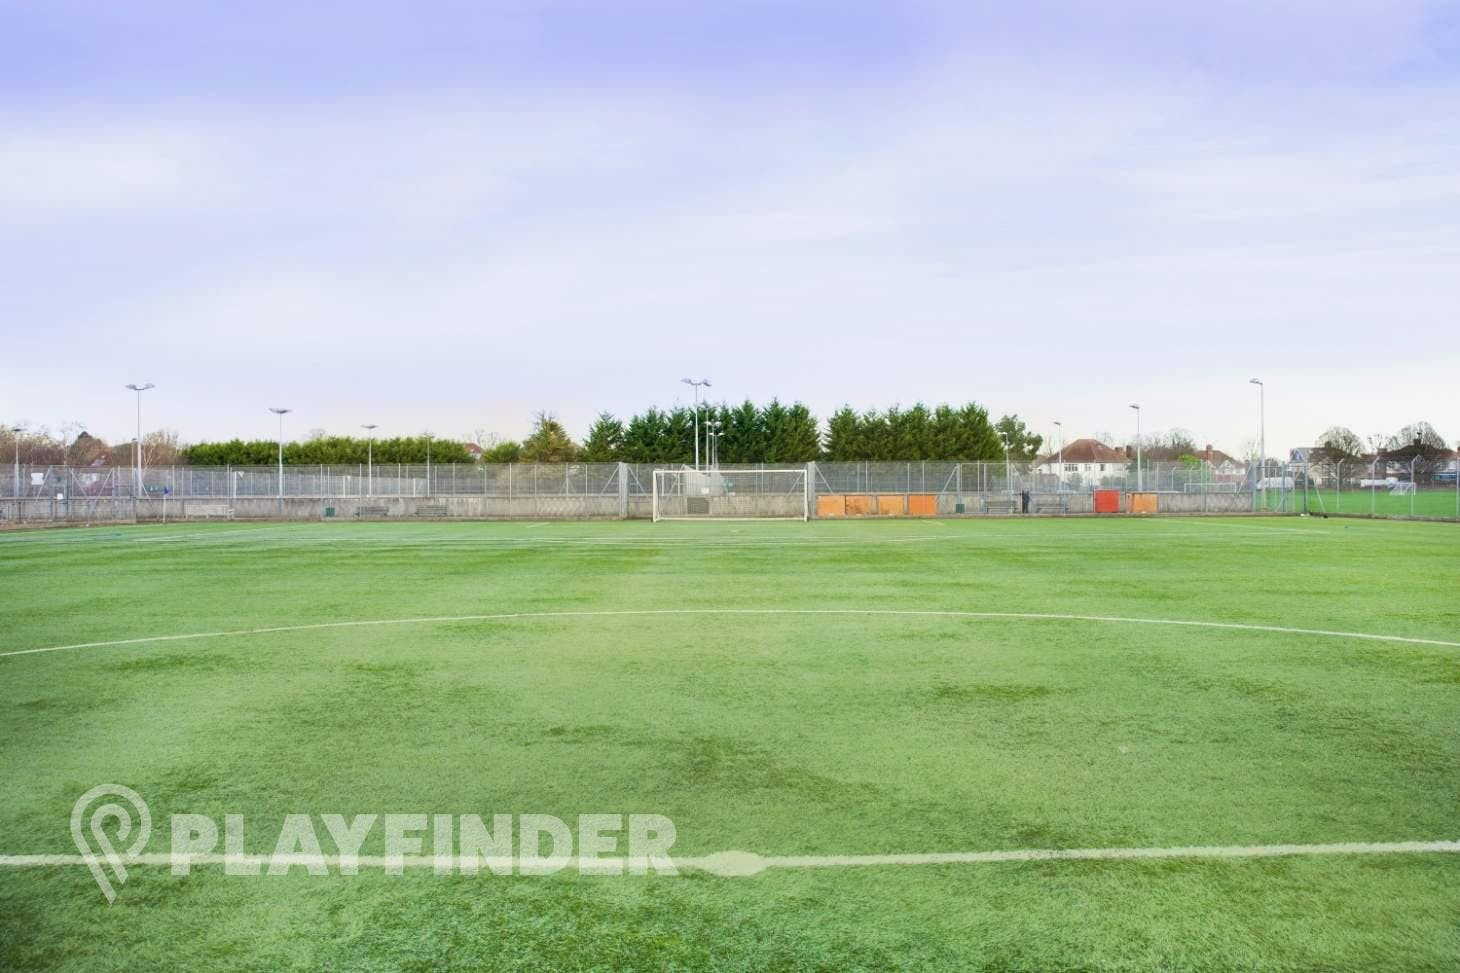 Coldharbour Leisure Centre 11 a side | 3G Astroturf football pitch